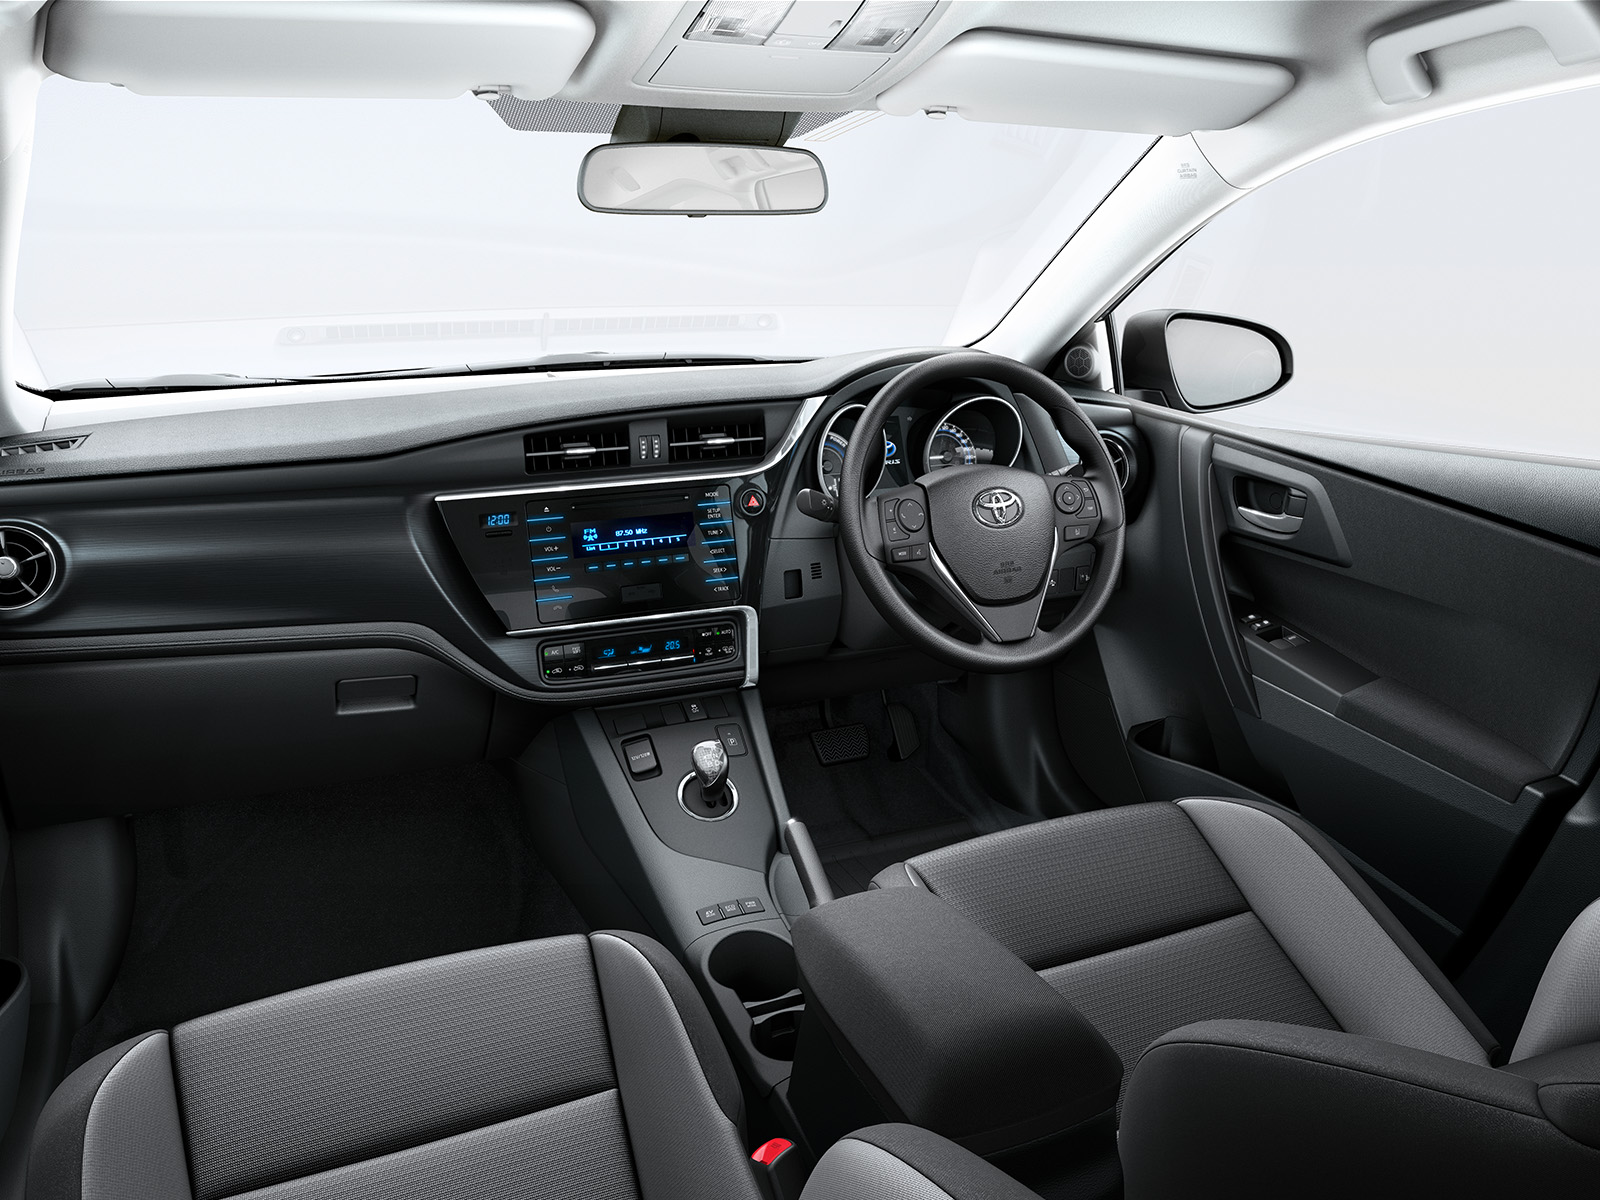 Toyota Auris, interior, leather steering wheel, control panel, gear stick, grey front seats & side of glove compartment in sight, white and grey colour scheme.